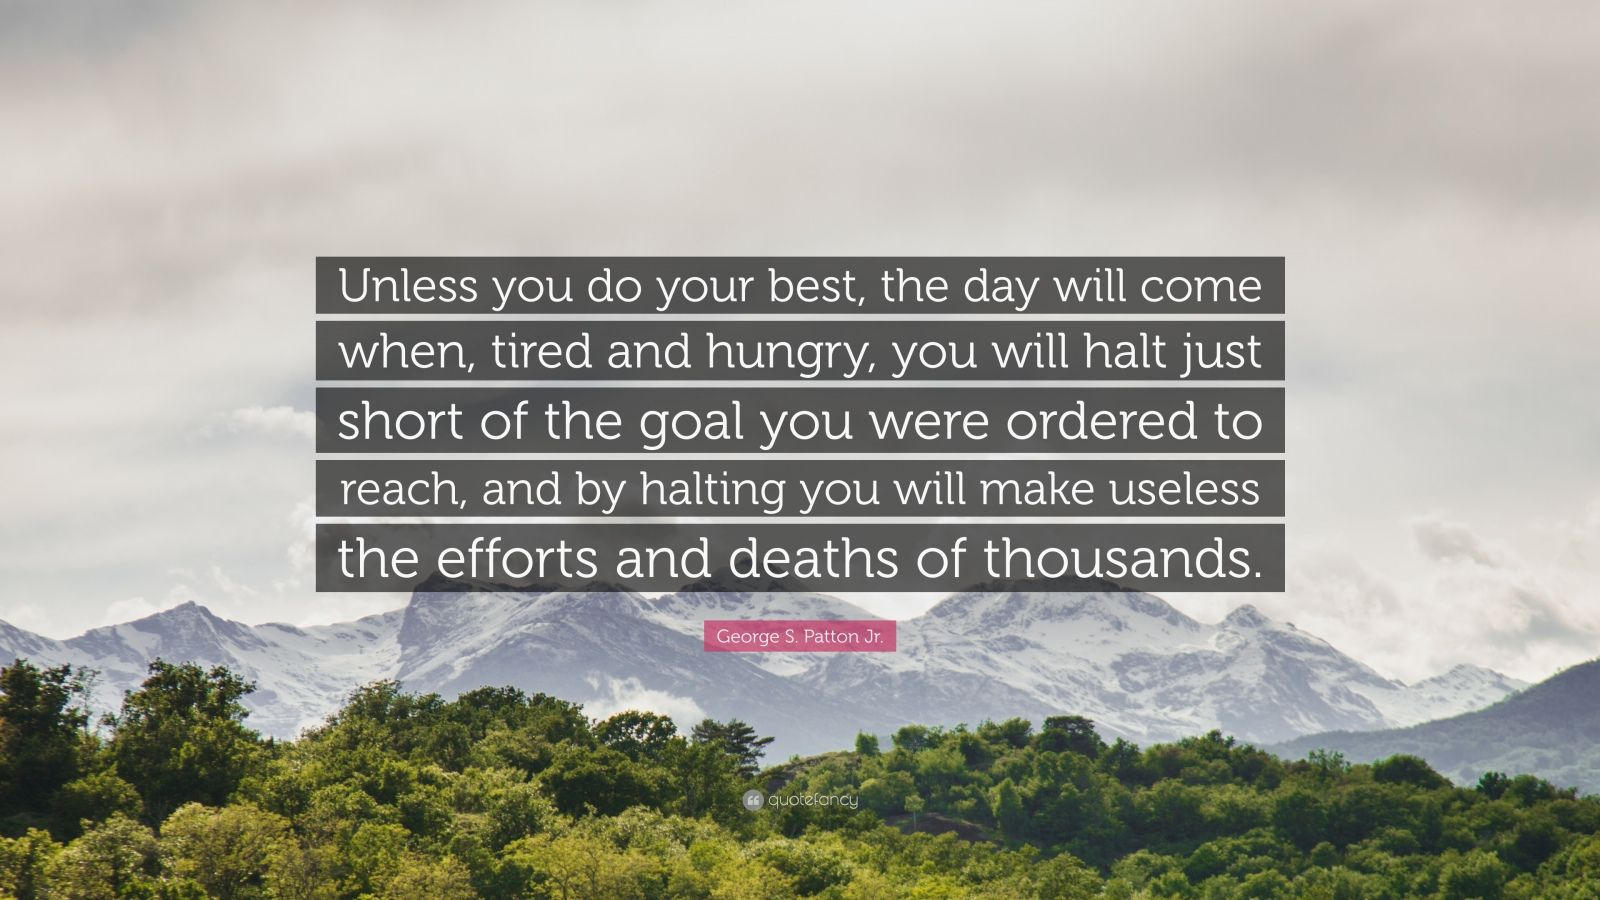 """George S. Patton Jr. Quote: """"Unless you do your best, the day will come when, tired and hungry, you will halt just short of the goal you were ordered to reach, and by halting you will make useless the efforts and deaths of thousands."""""""